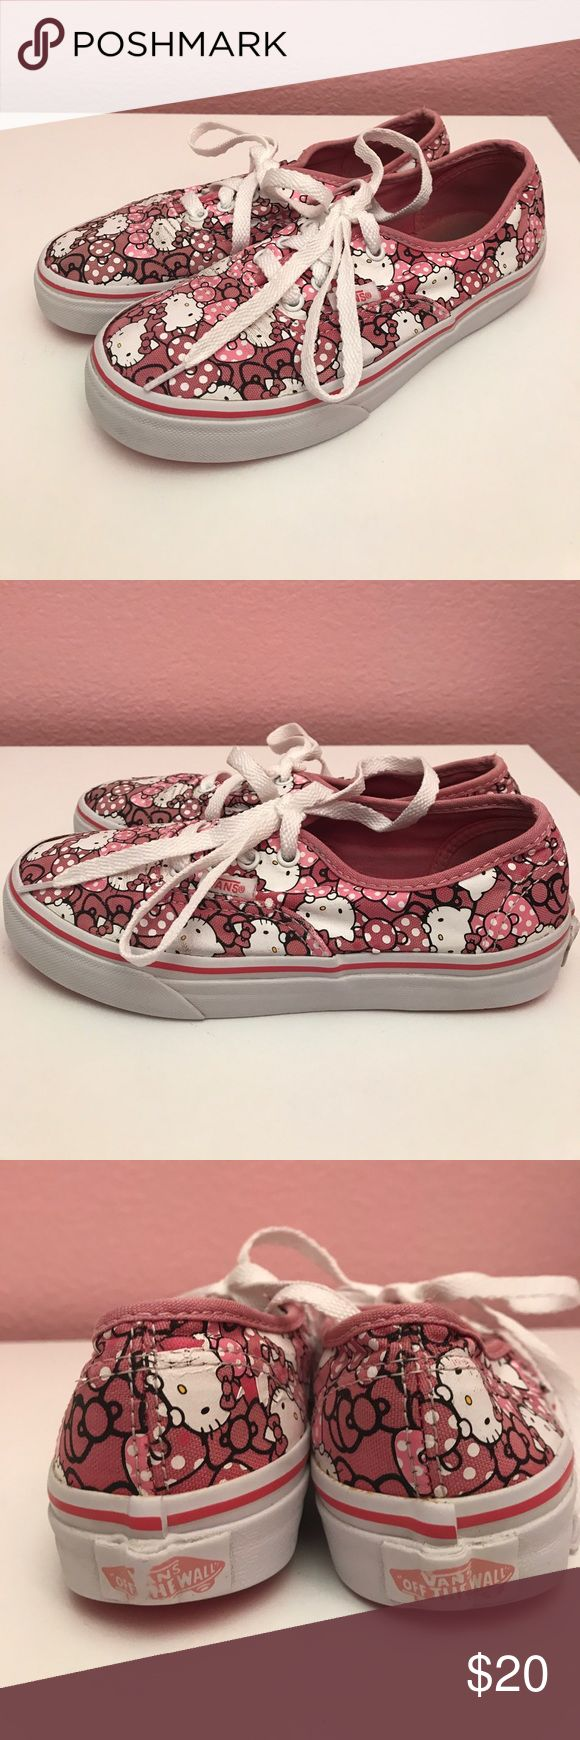 Hello kitty vans Gently used hello kitty vans. These were a limited addition design. Very cute. There is somewhere as shown. Overall in excellent condition! Absolutely cute and comfortable! Vans Shoes Sneakers